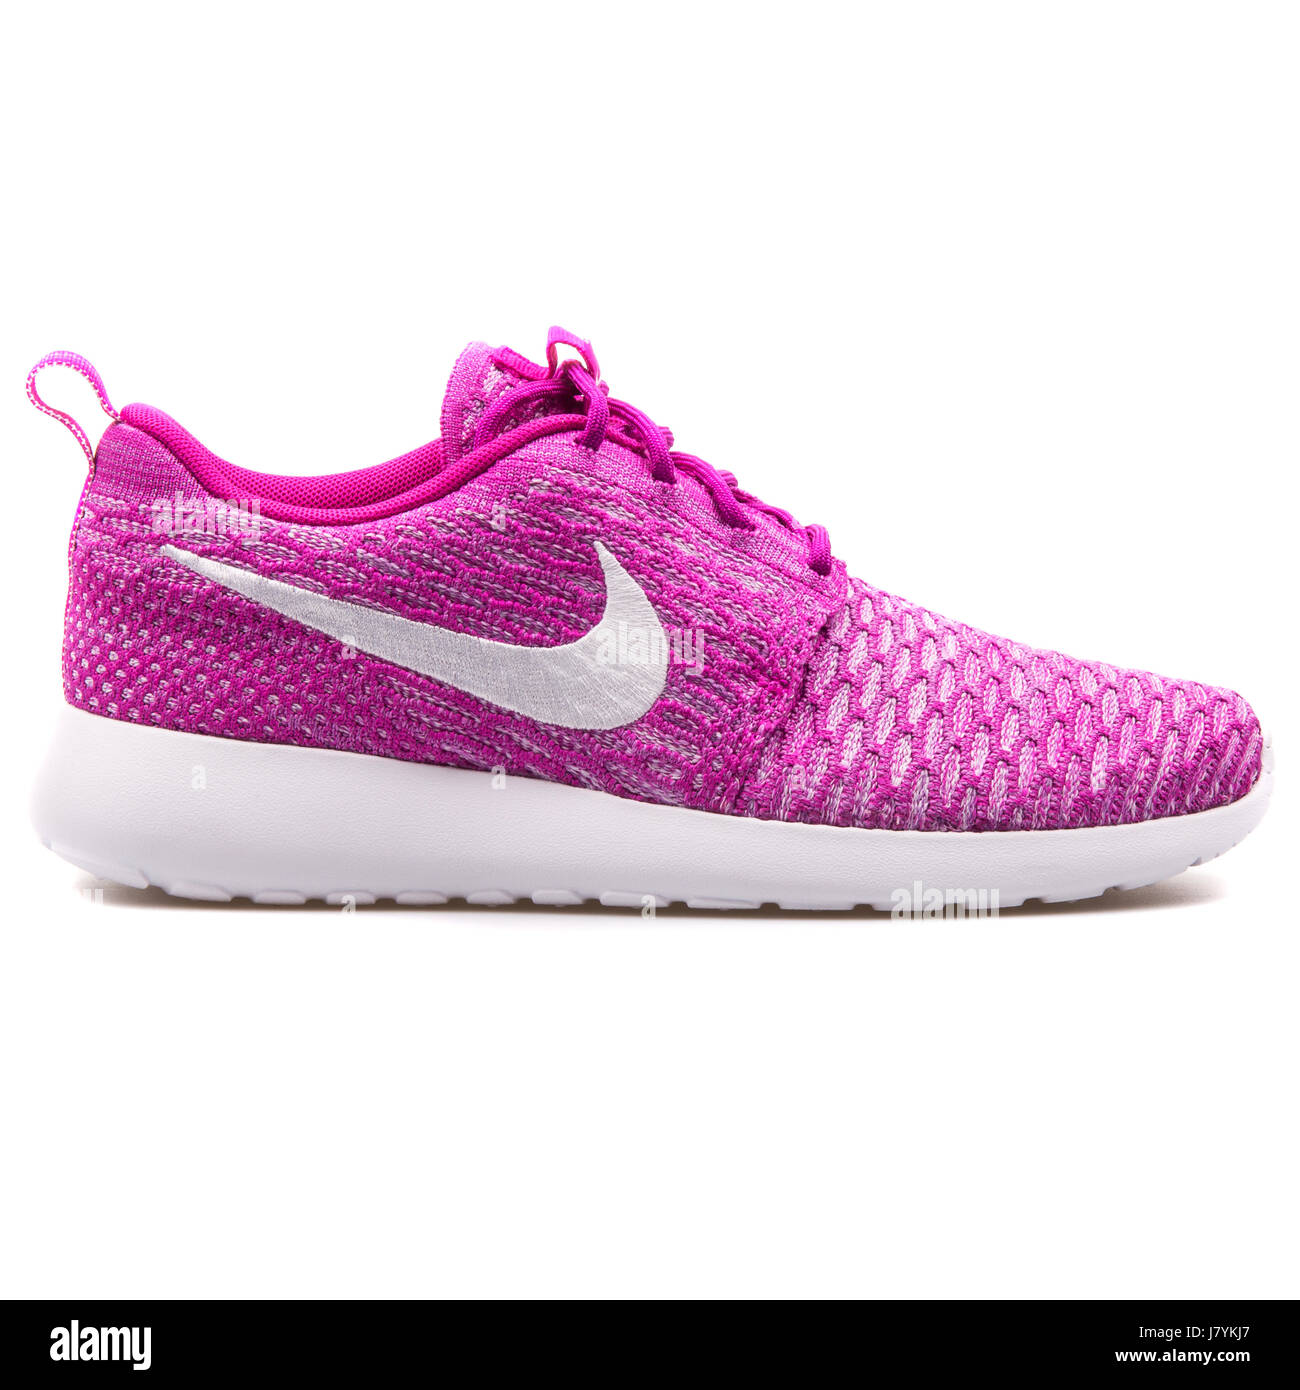 huge discount bc1ad b1eff Nike WMNS Rosherun Flyknit Women s Fuchsia Running Sneakers - 704927-500 -  Stock Image